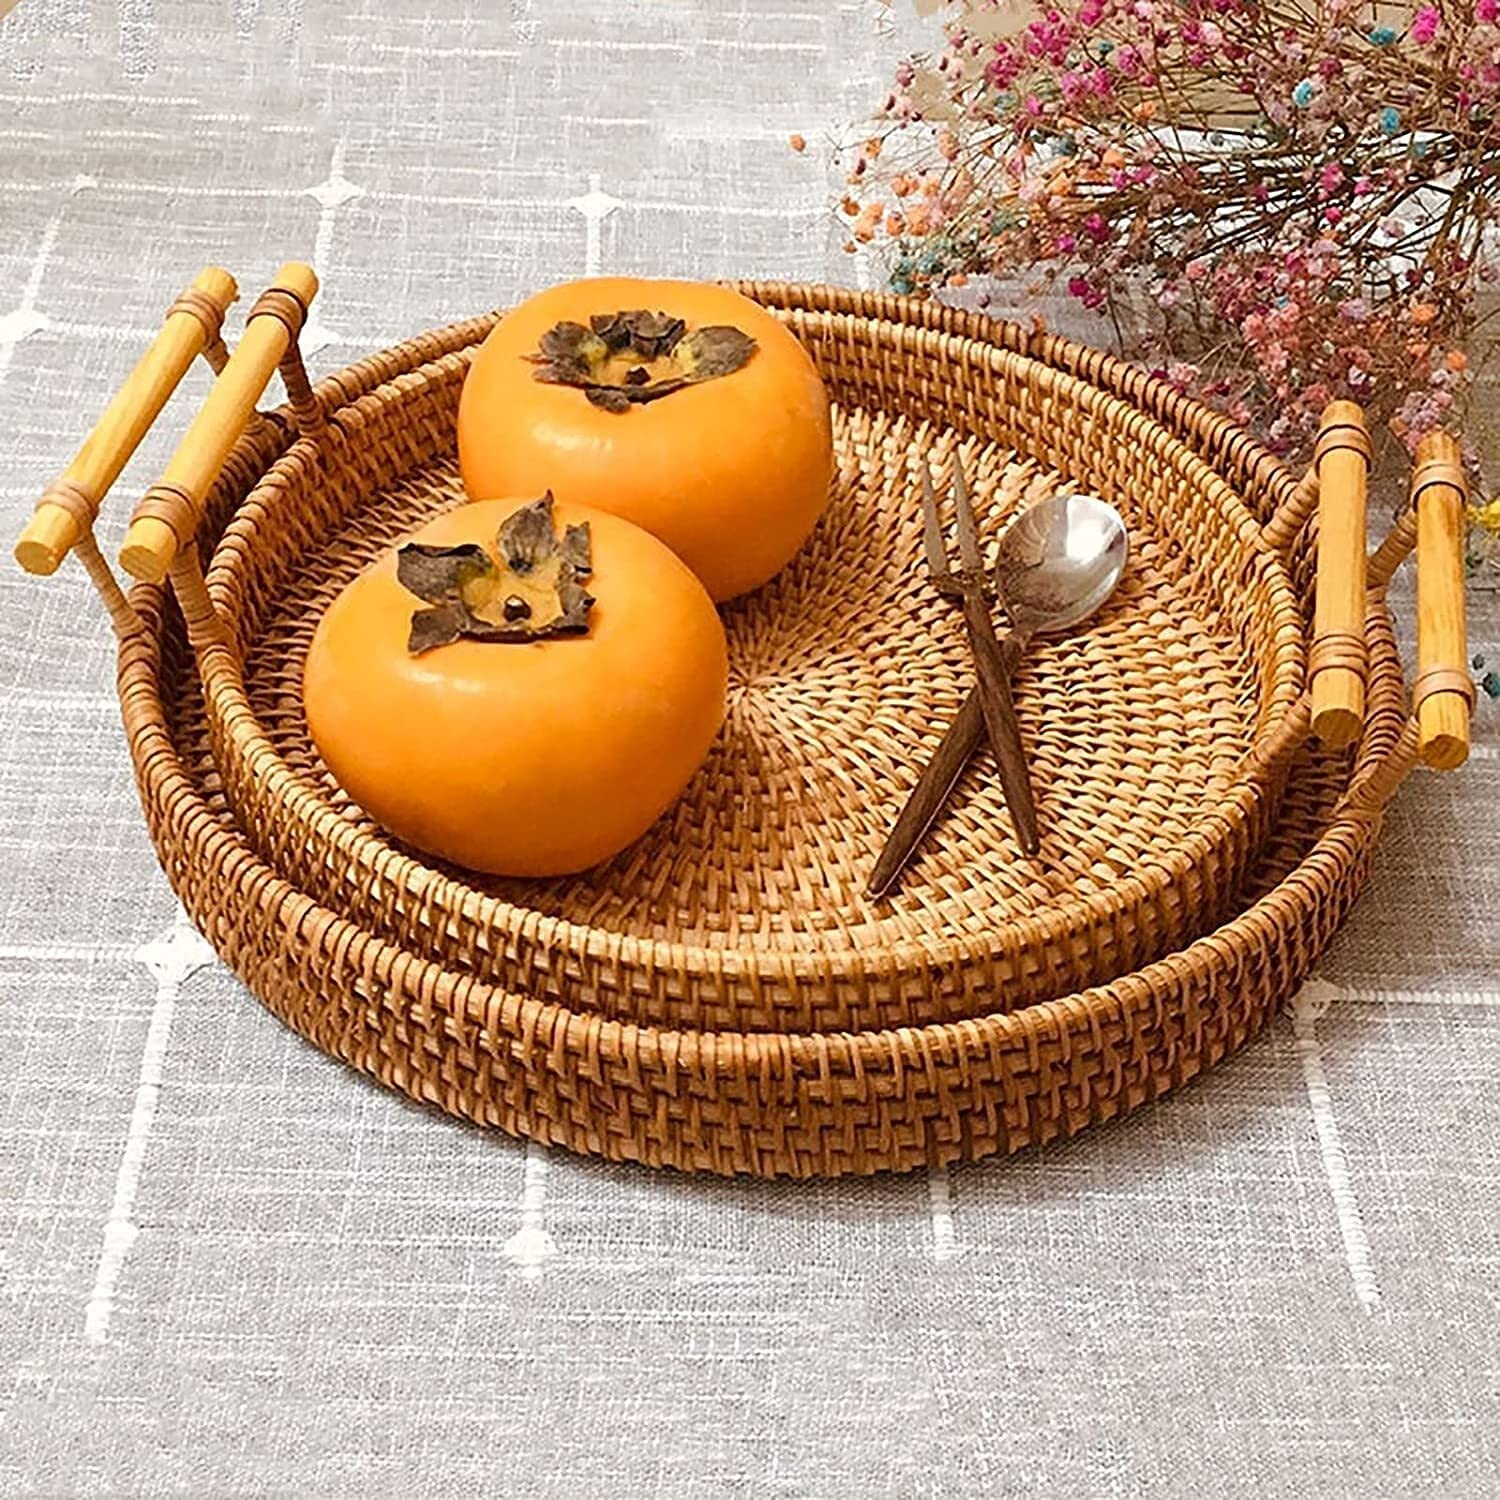 HDSF Hand Woven Round Rattan Basket Storage Deluxe Max 52% OFF Handles with Wooden